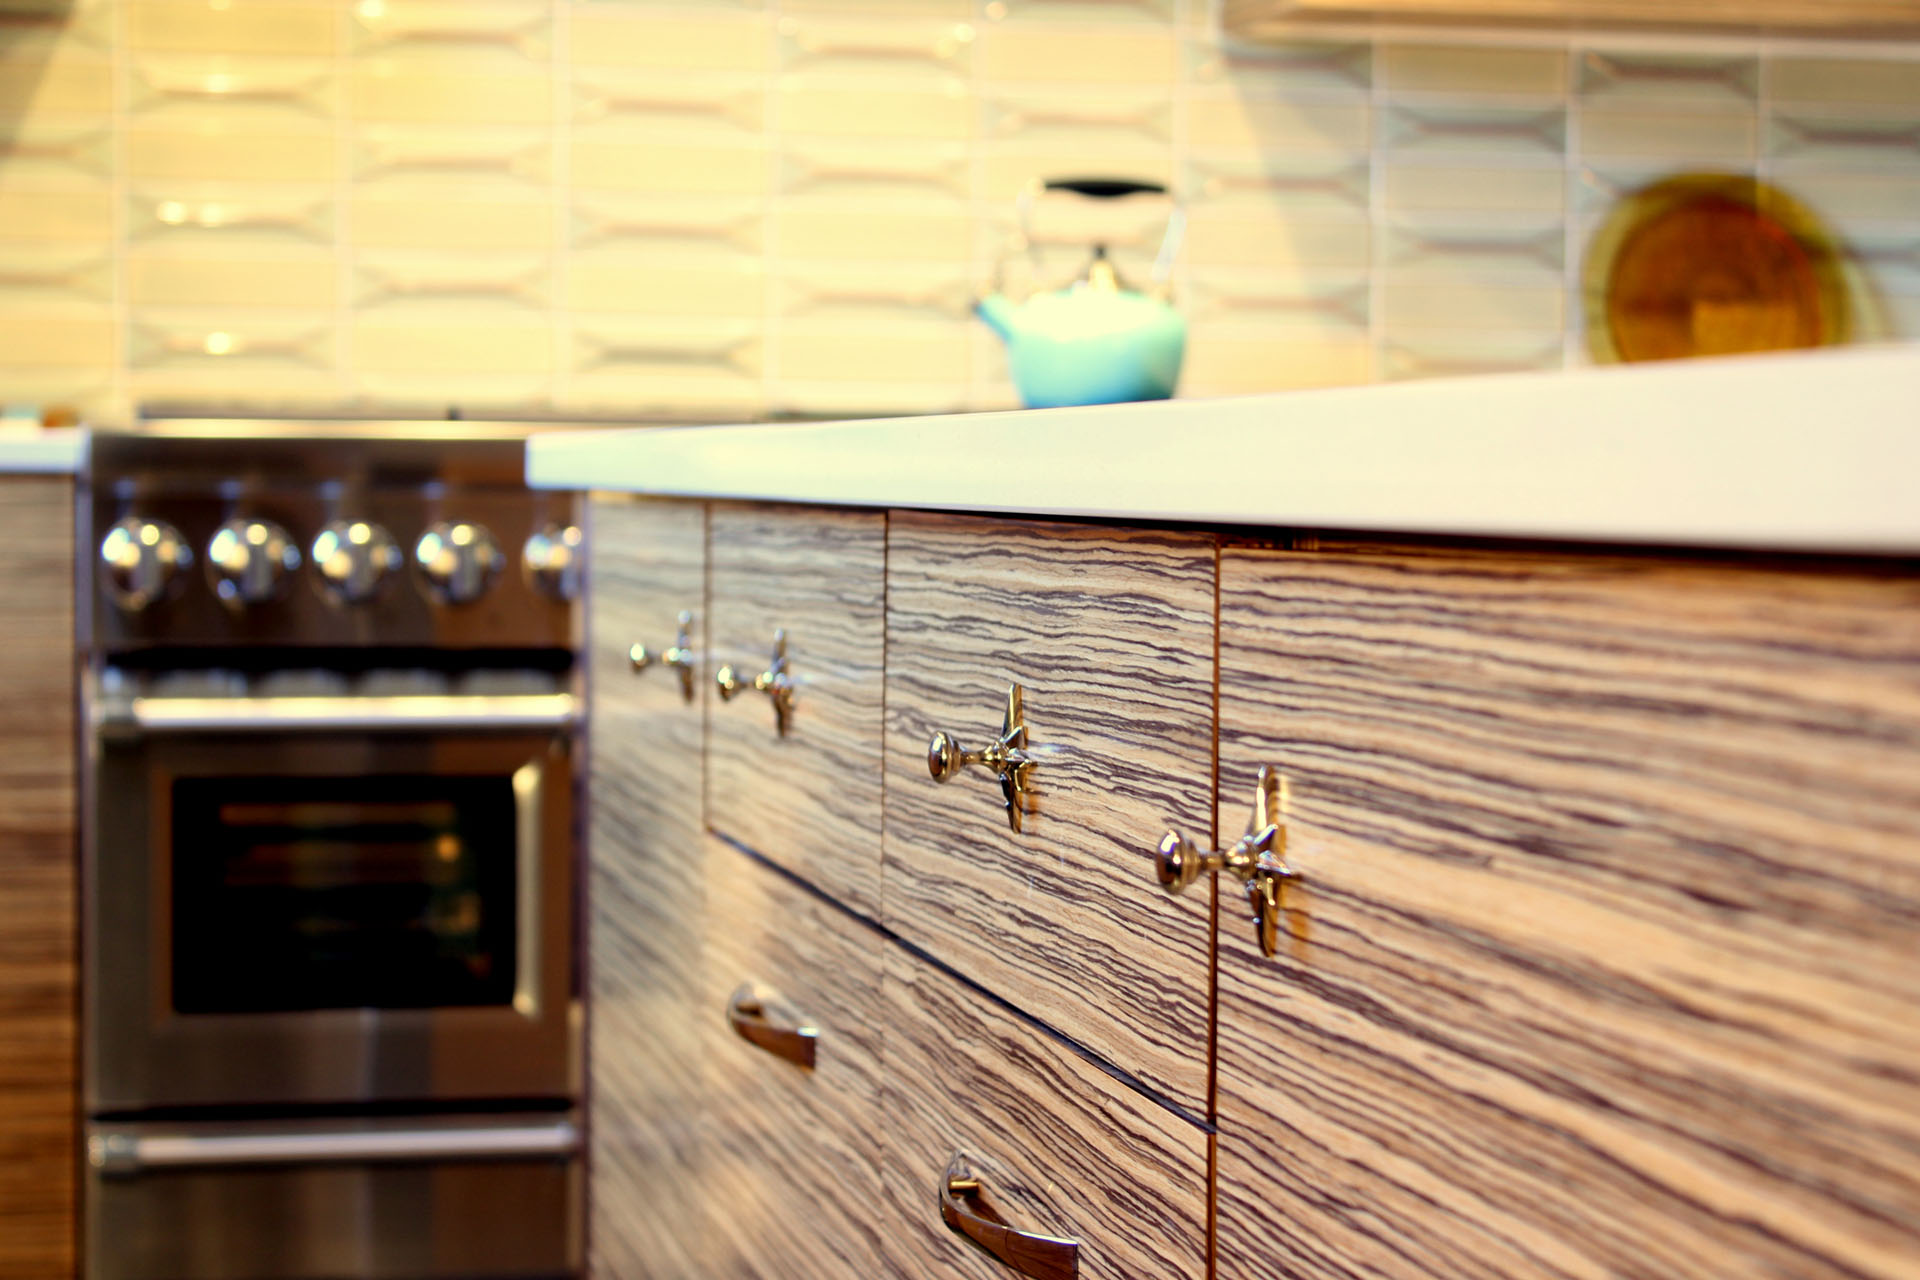 Westside Zebrawood Kitchen